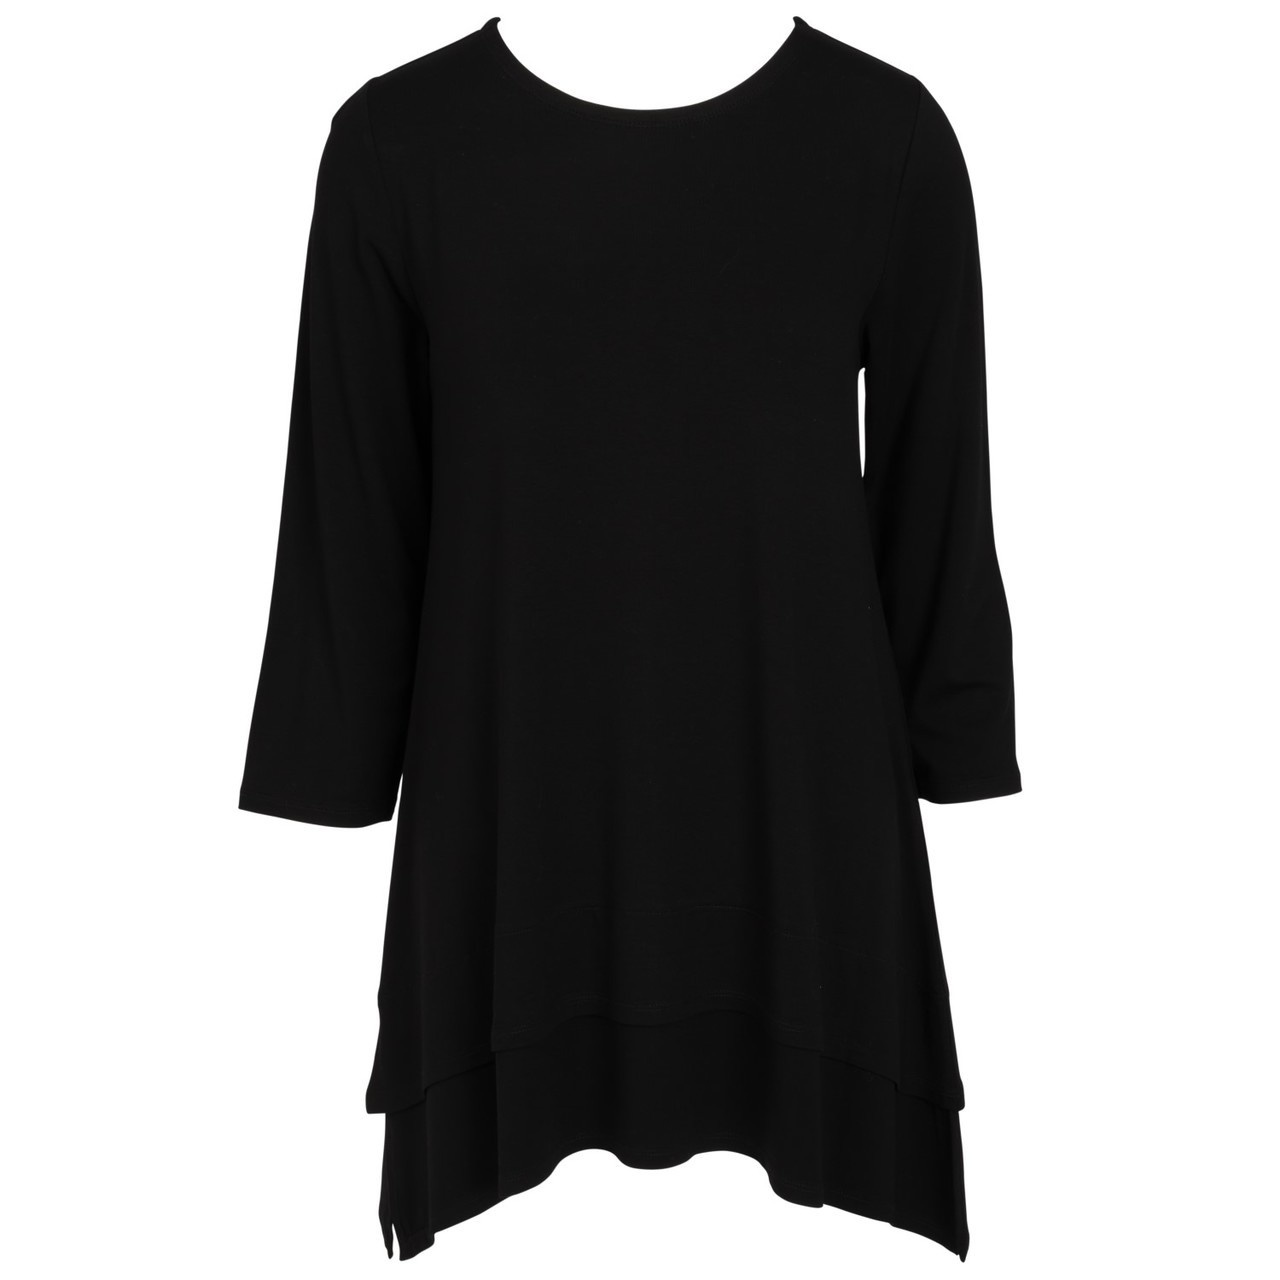 Double Layer Tunic - Black - XXL